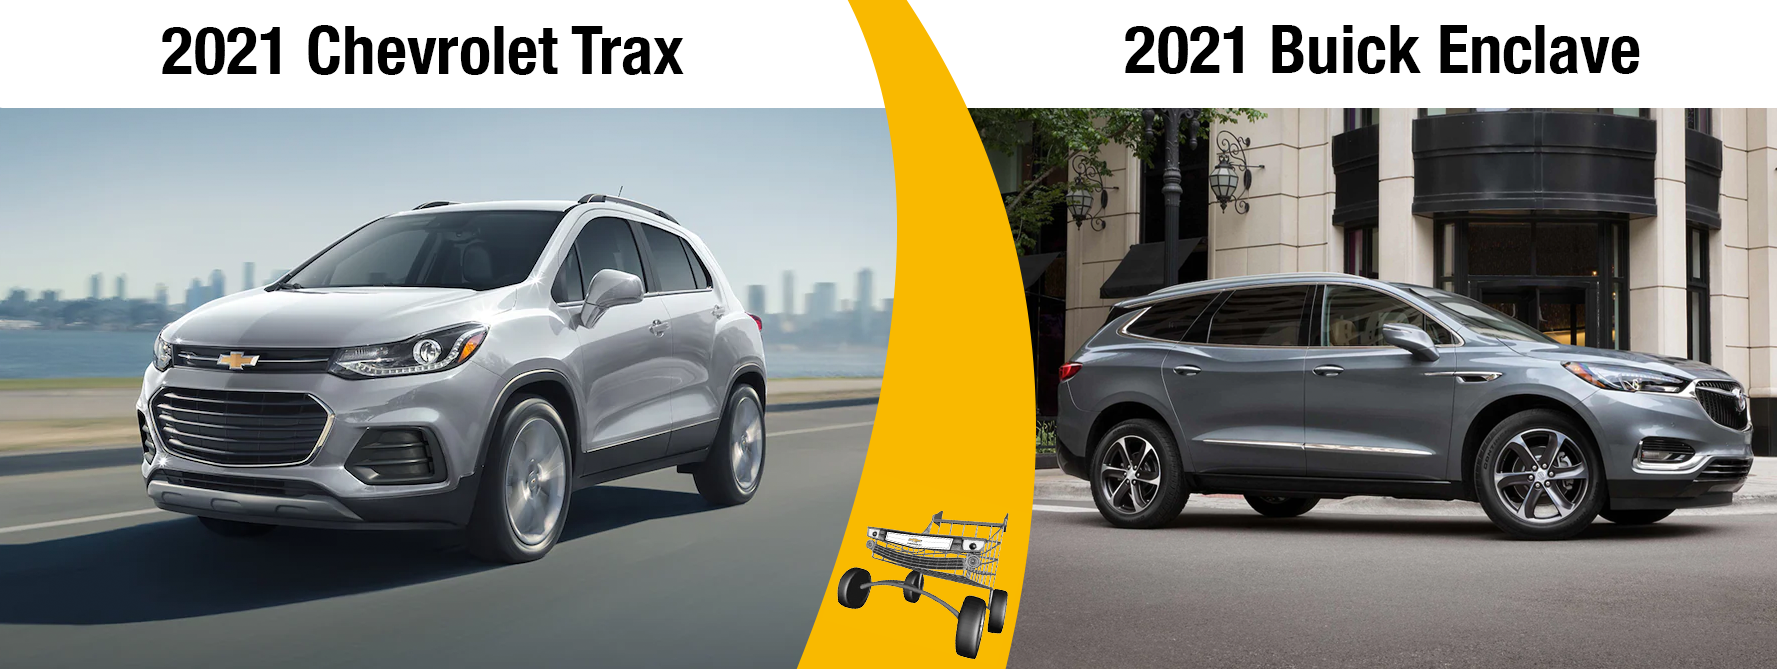 New 2021 Chevrolet Trax Vs 2021 Buick Enclave